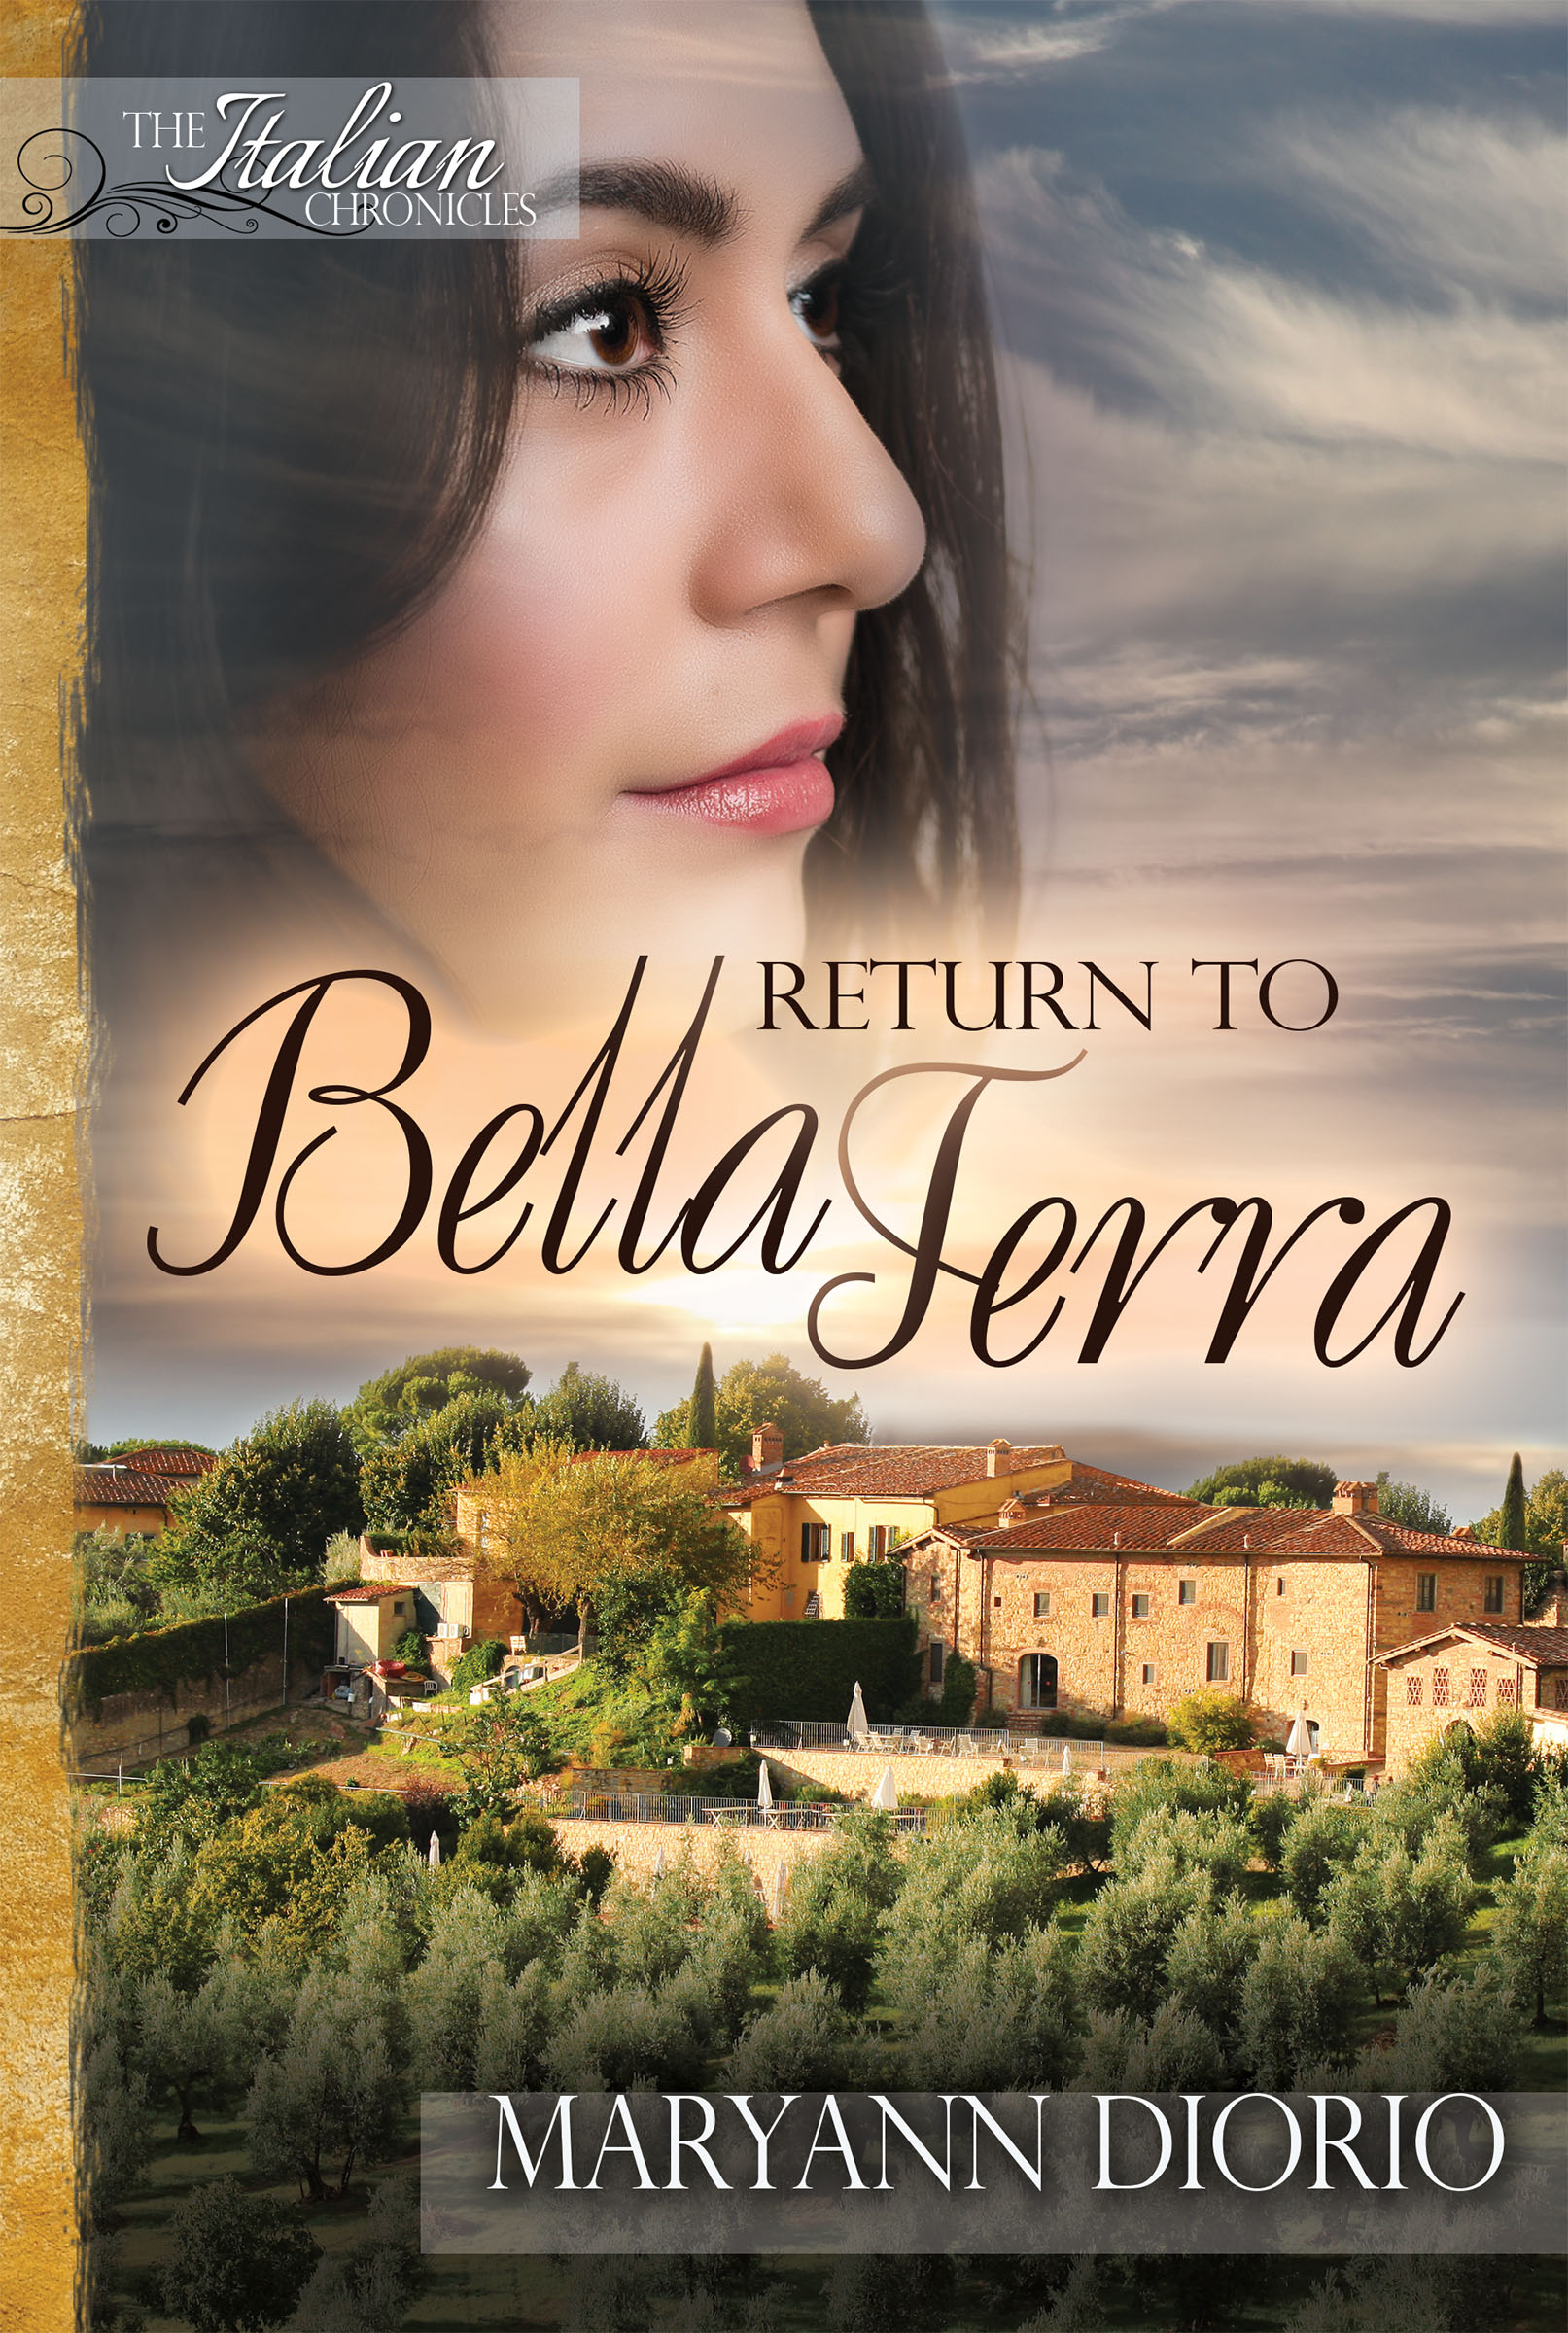 Return to Bella Terra: A Novel (Book 3 of The Italian Chronicles Trilogy)